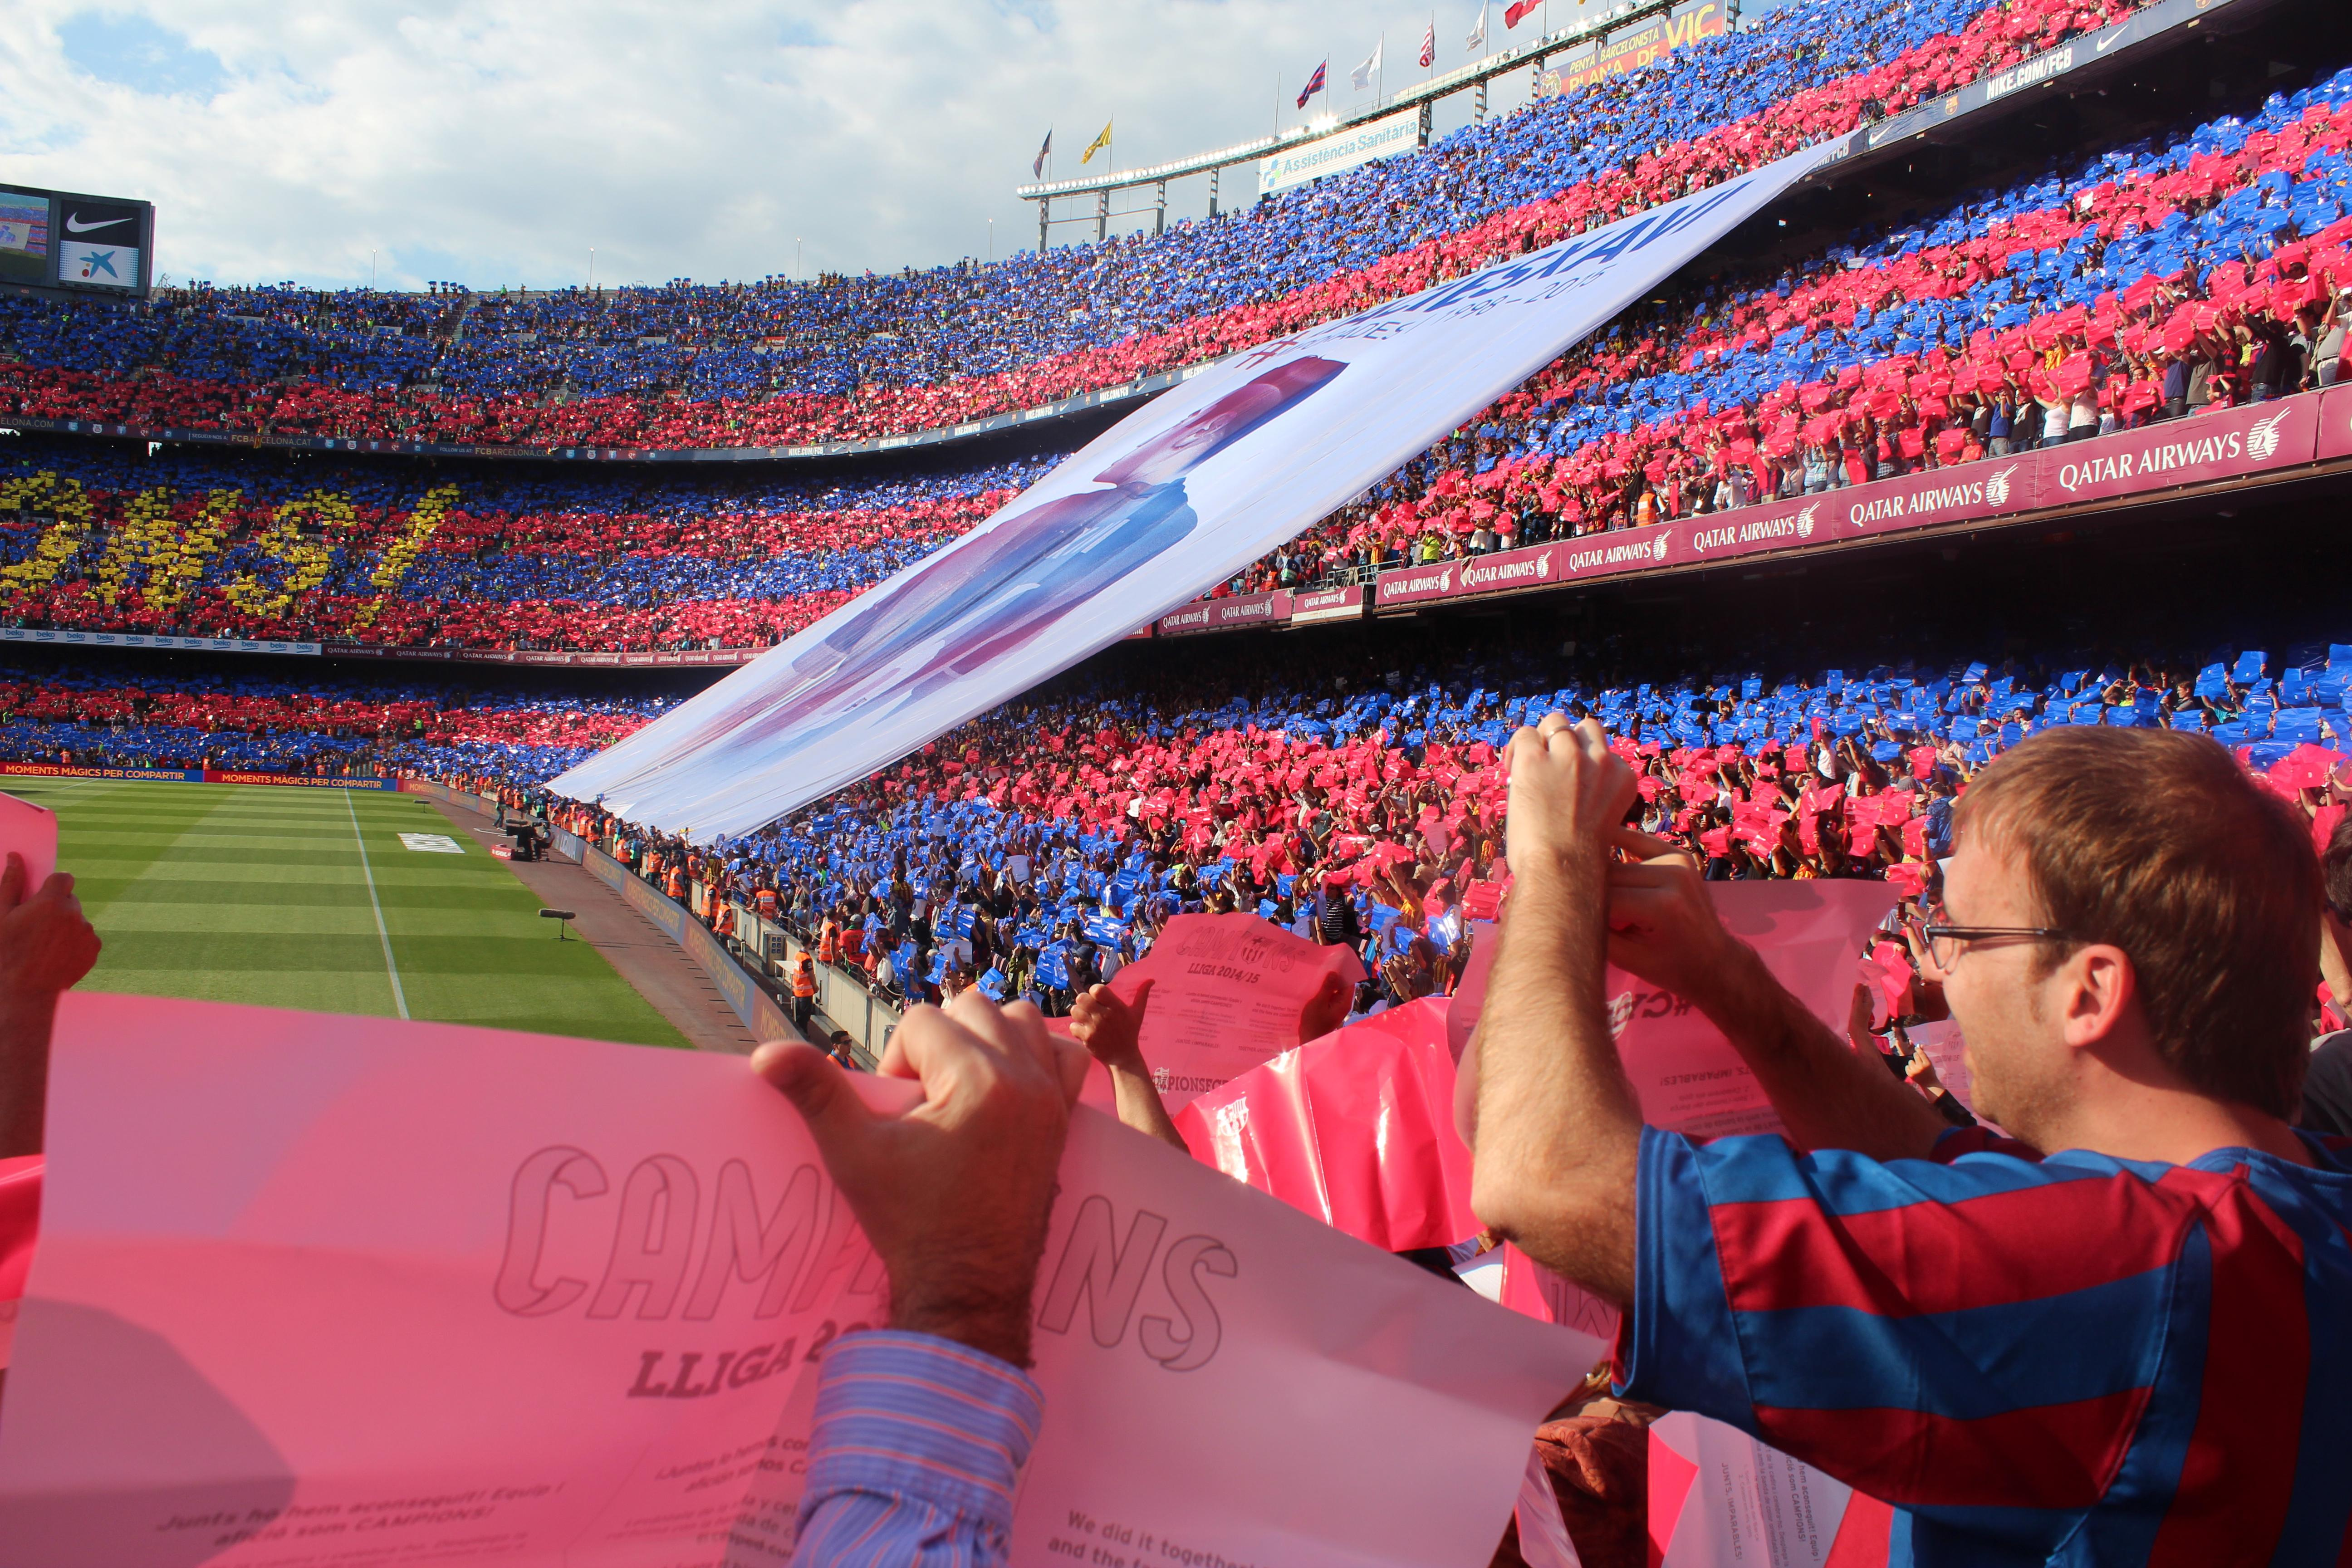 Camp Nou Section 123 Row 7 Seat 14